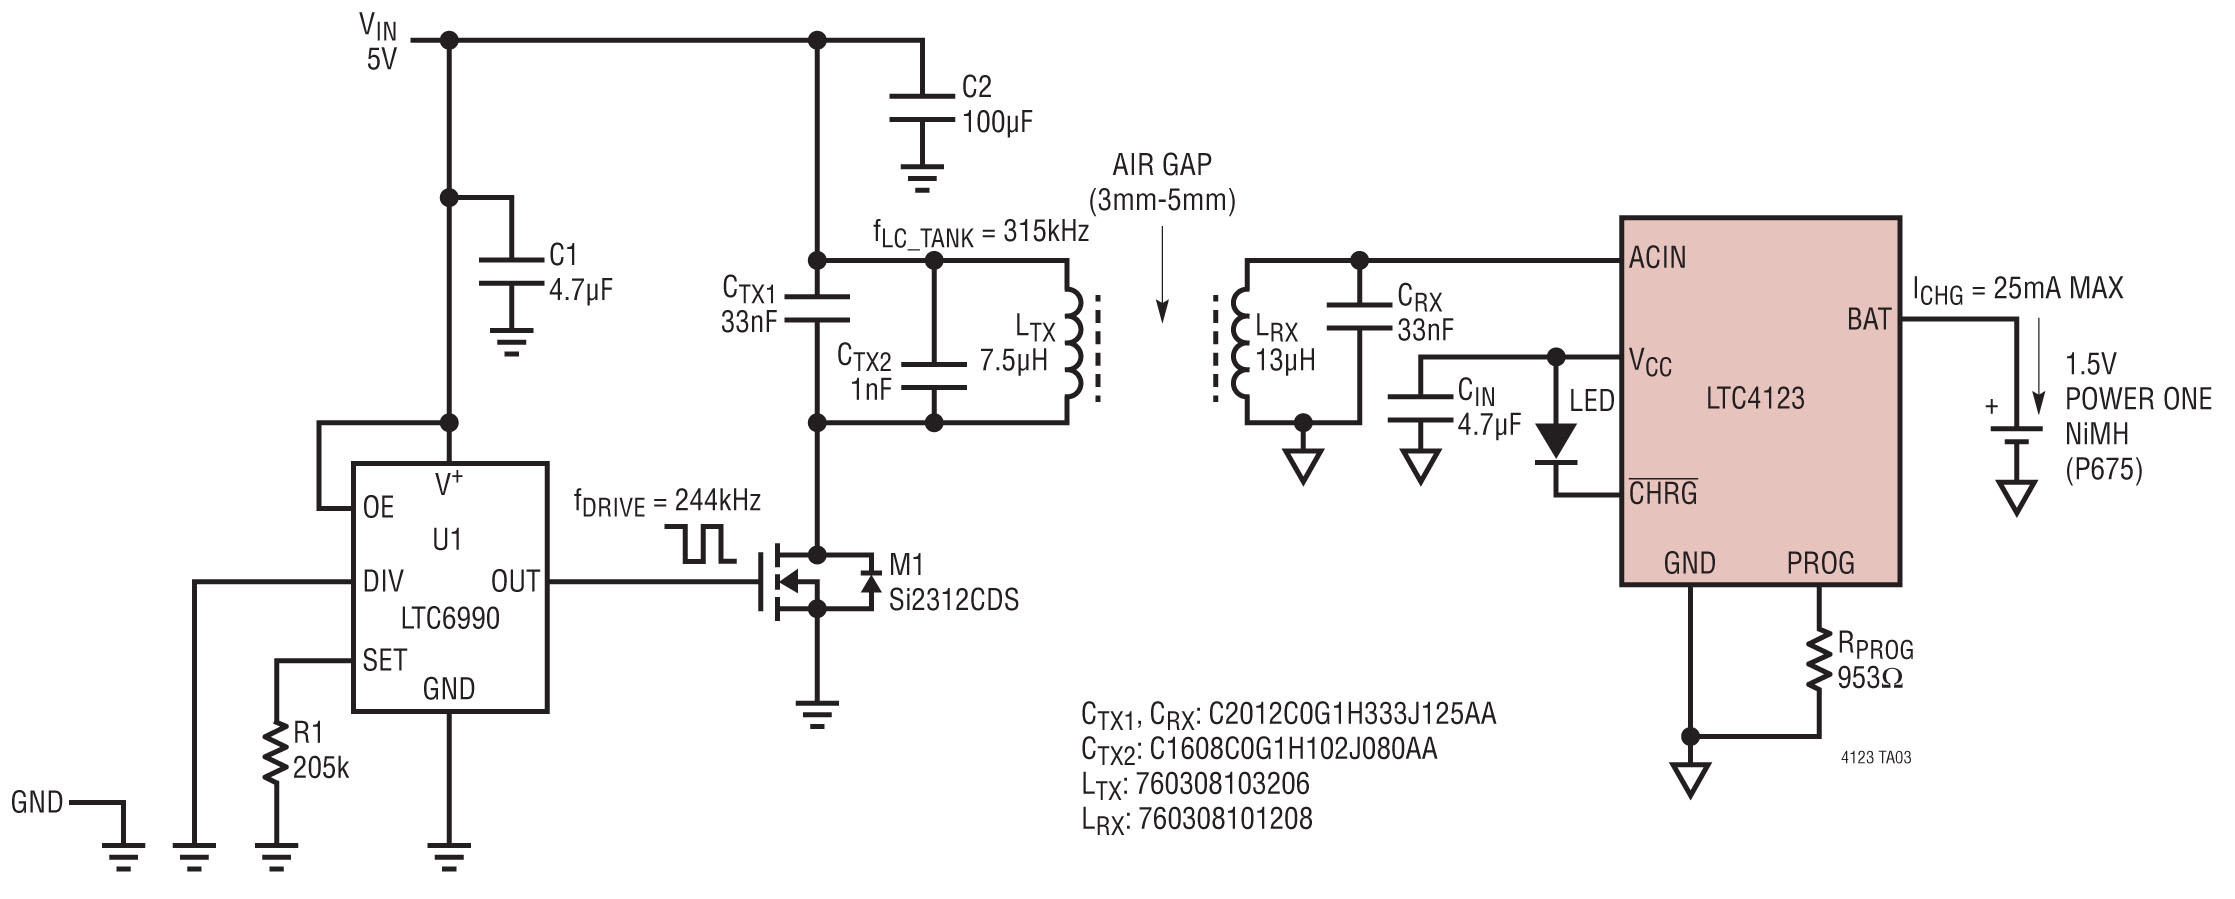 Can You Hear The Digital Difference Crystal Focus Wiring Diagrams Figure 2 Typical Schematic Of Ltc4123